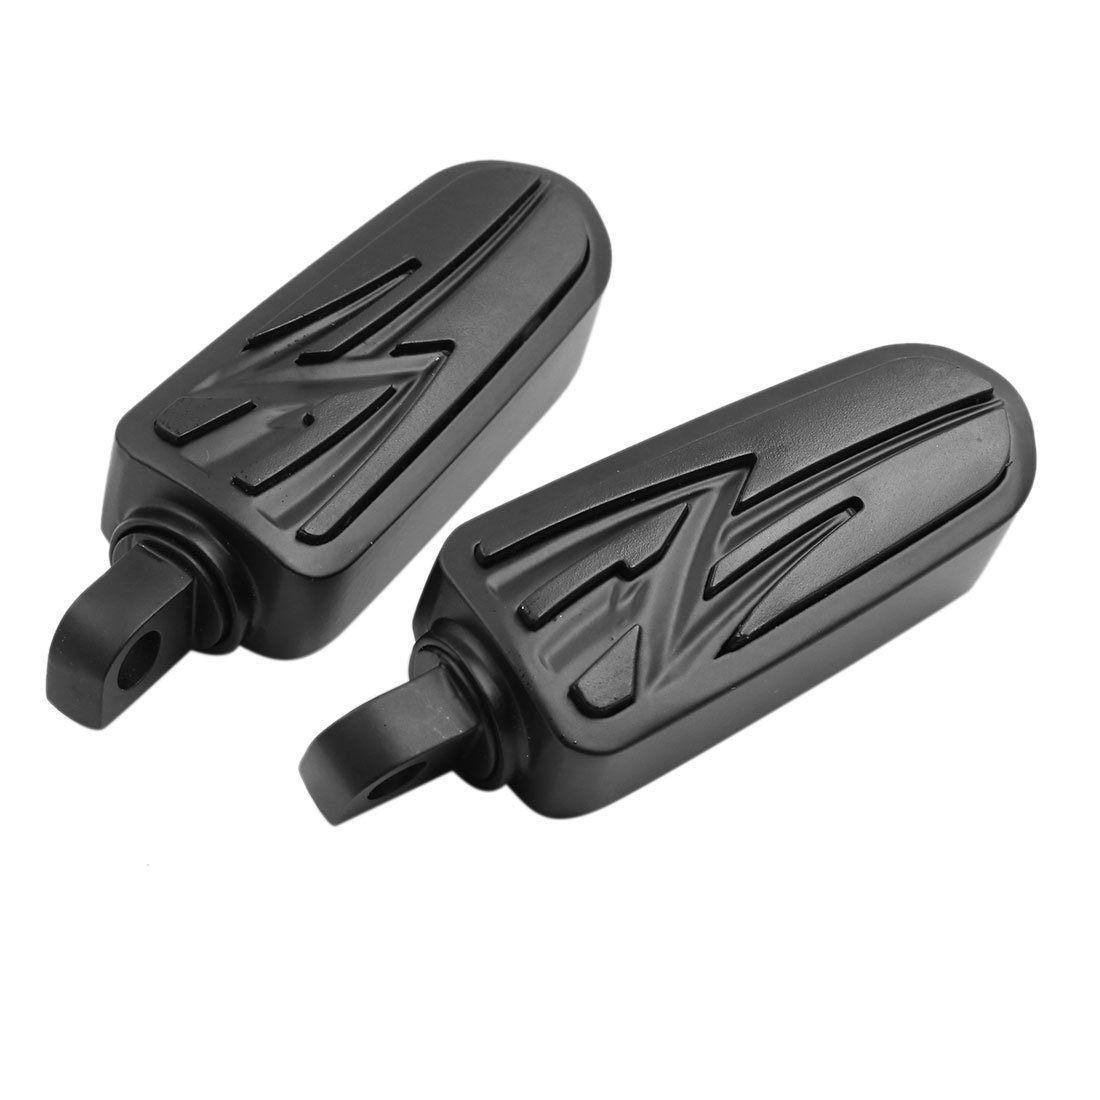 F FIERCE CYCLE 2pcs Aluminum Alloy Rubber Motorcycle Foot Pegs Footrest Pedal Black for Harley Davidson